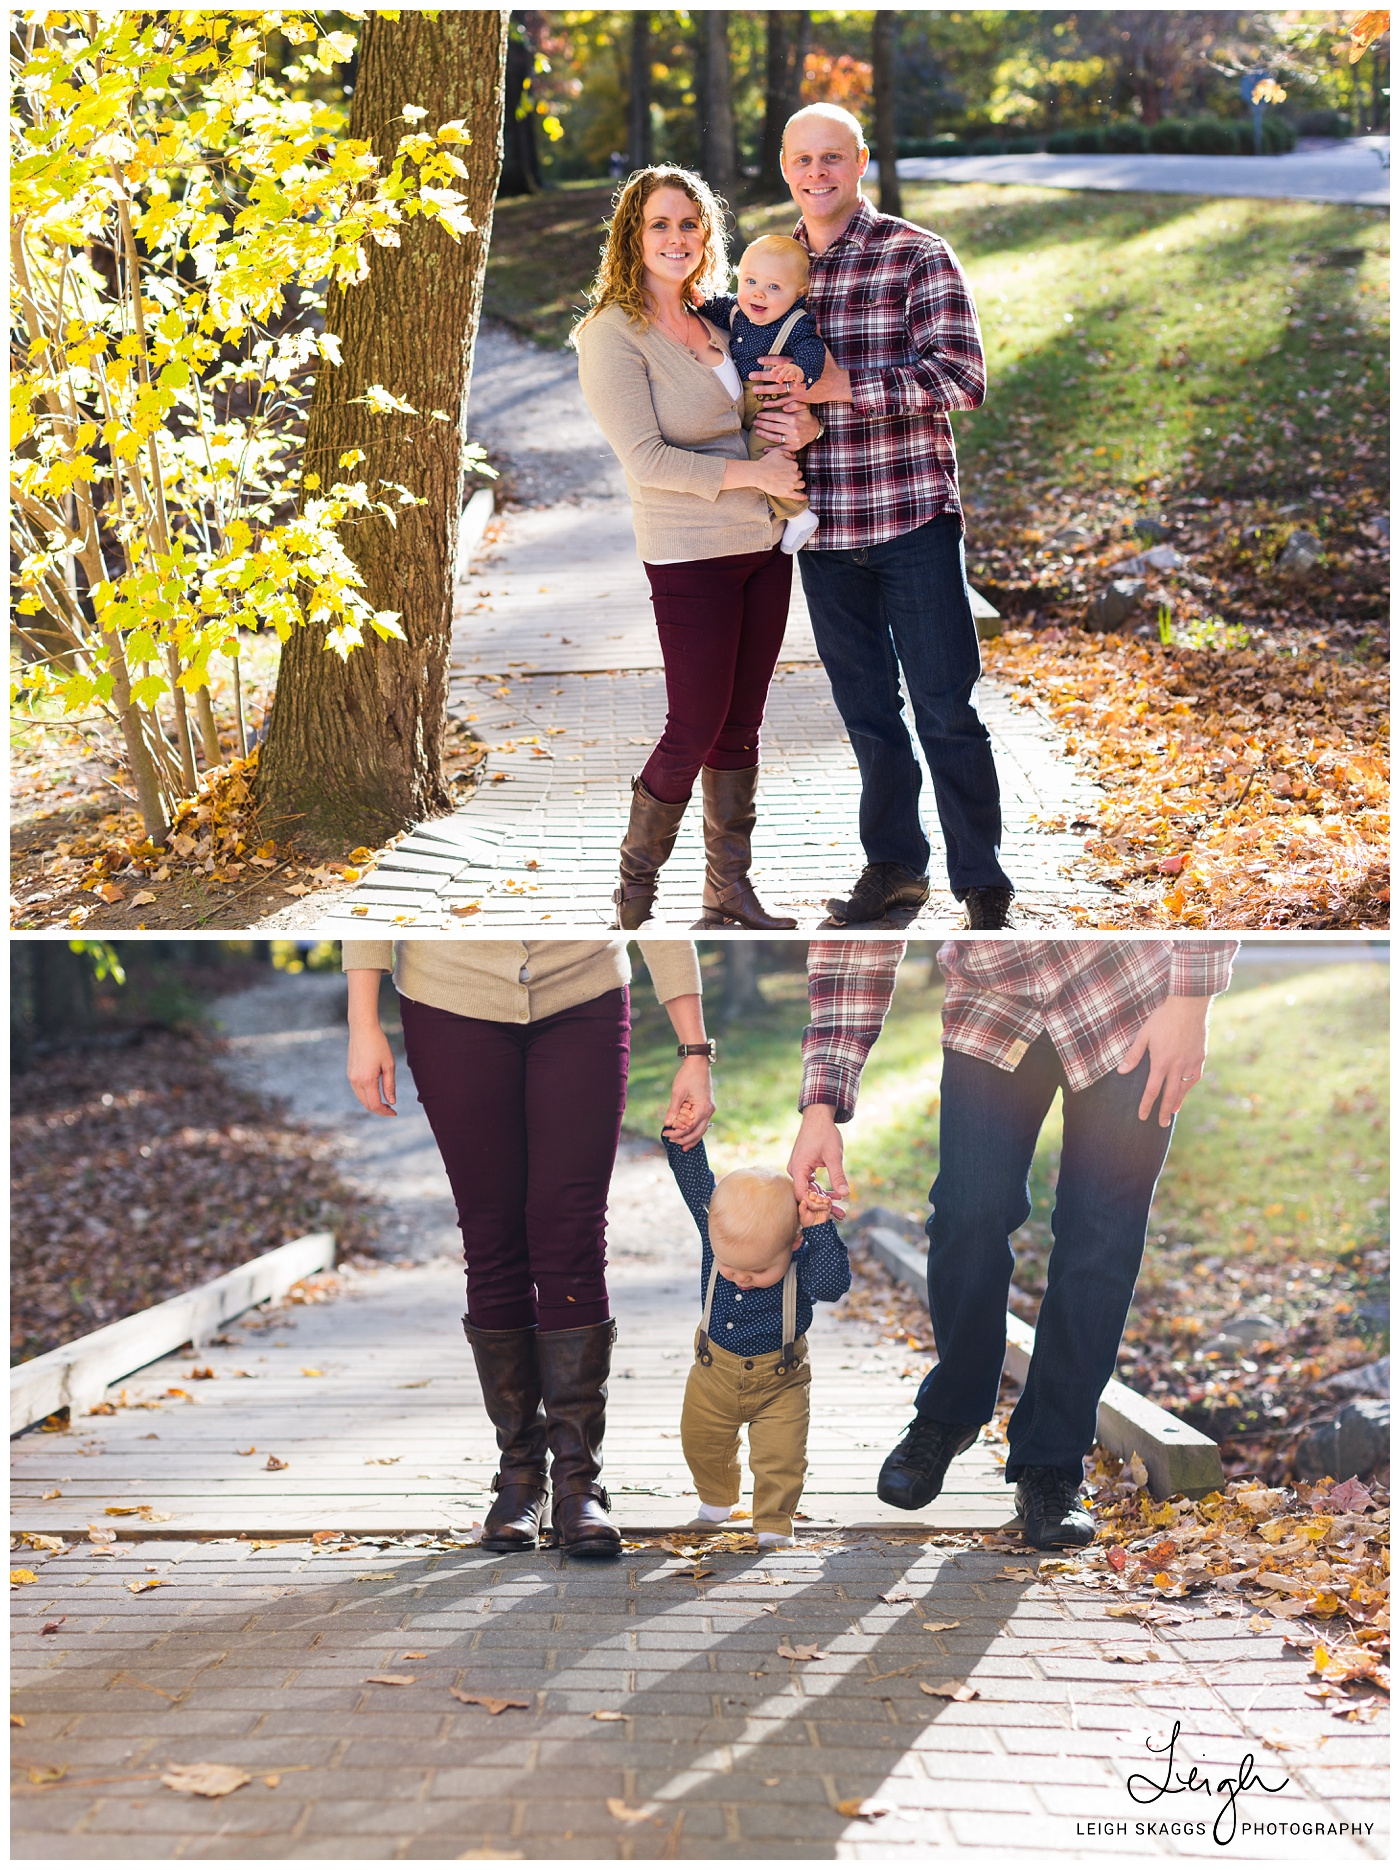 Freddy, Megan & Grant | A Noland Trail Family Session